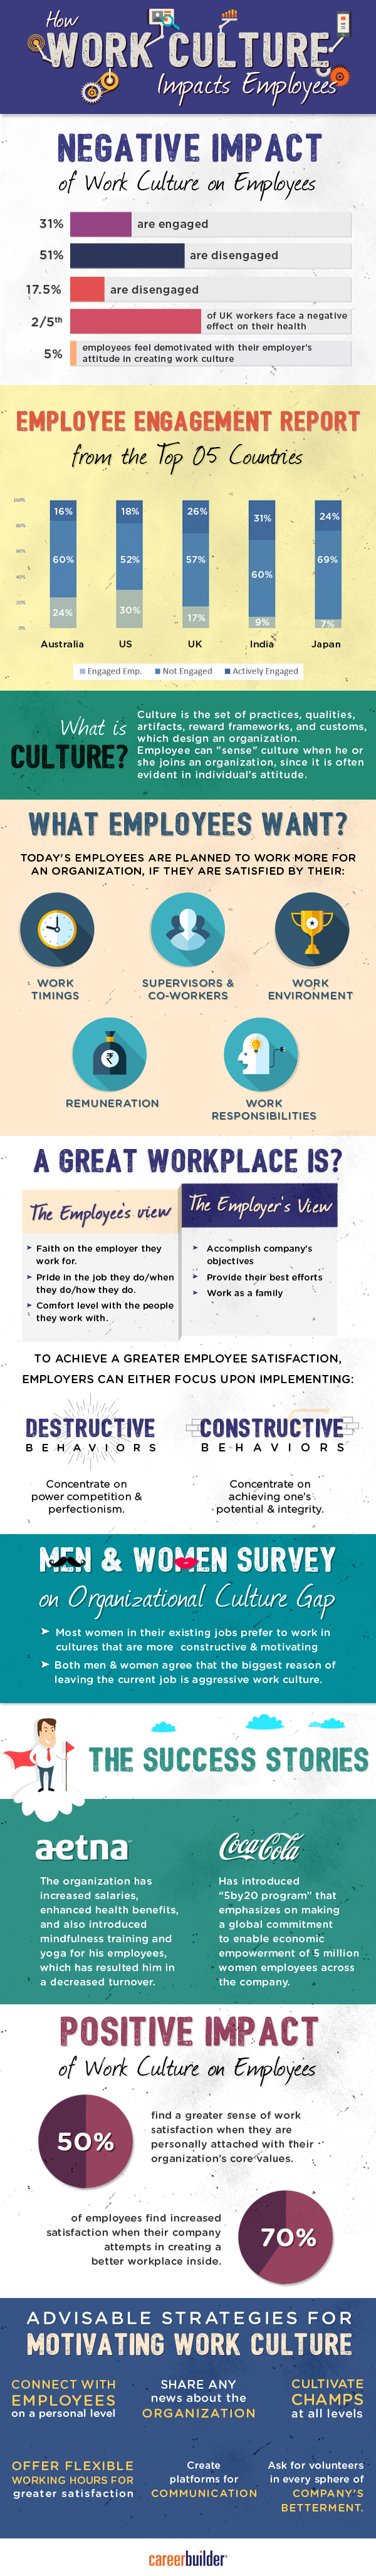 How Work Culture Impacts Employees